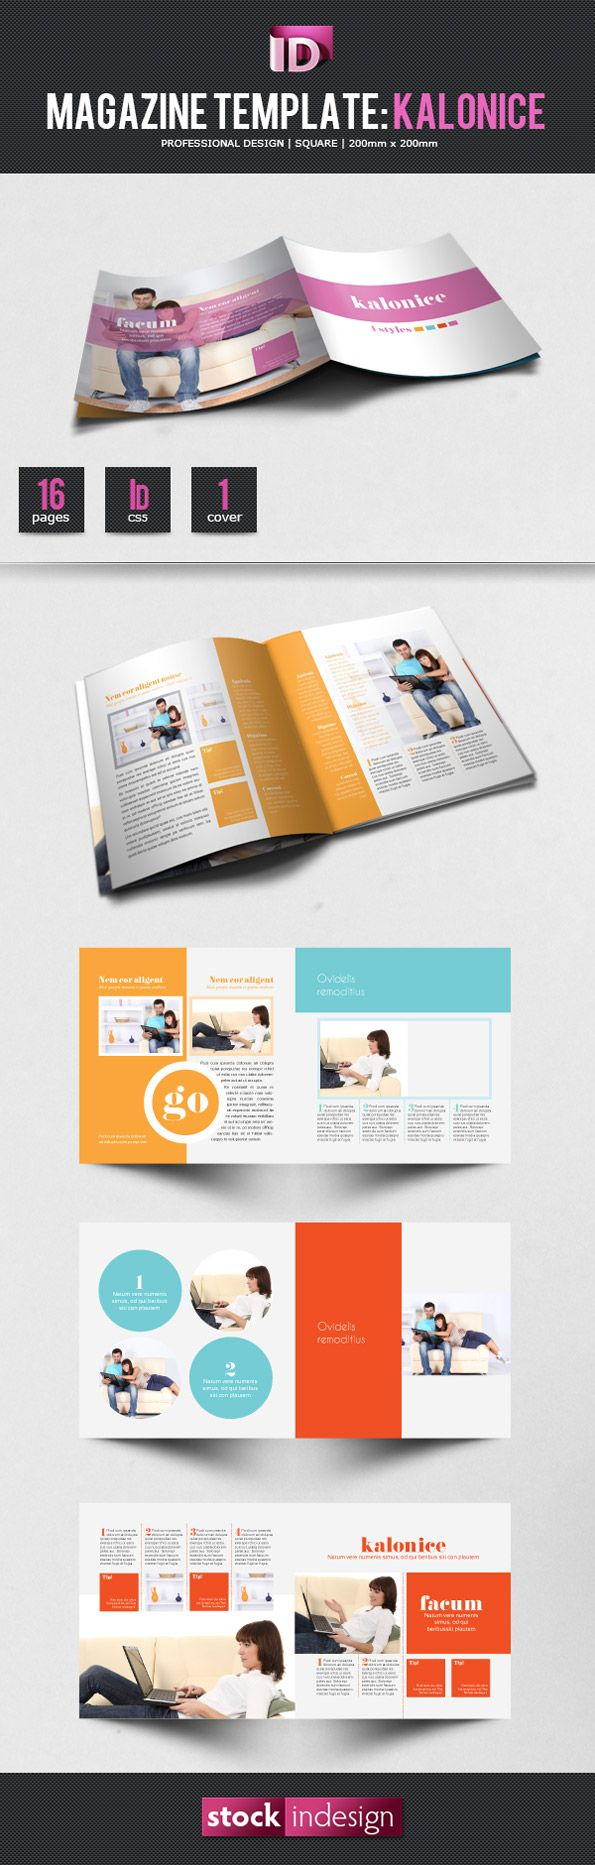 free indesign magazine template kalonice